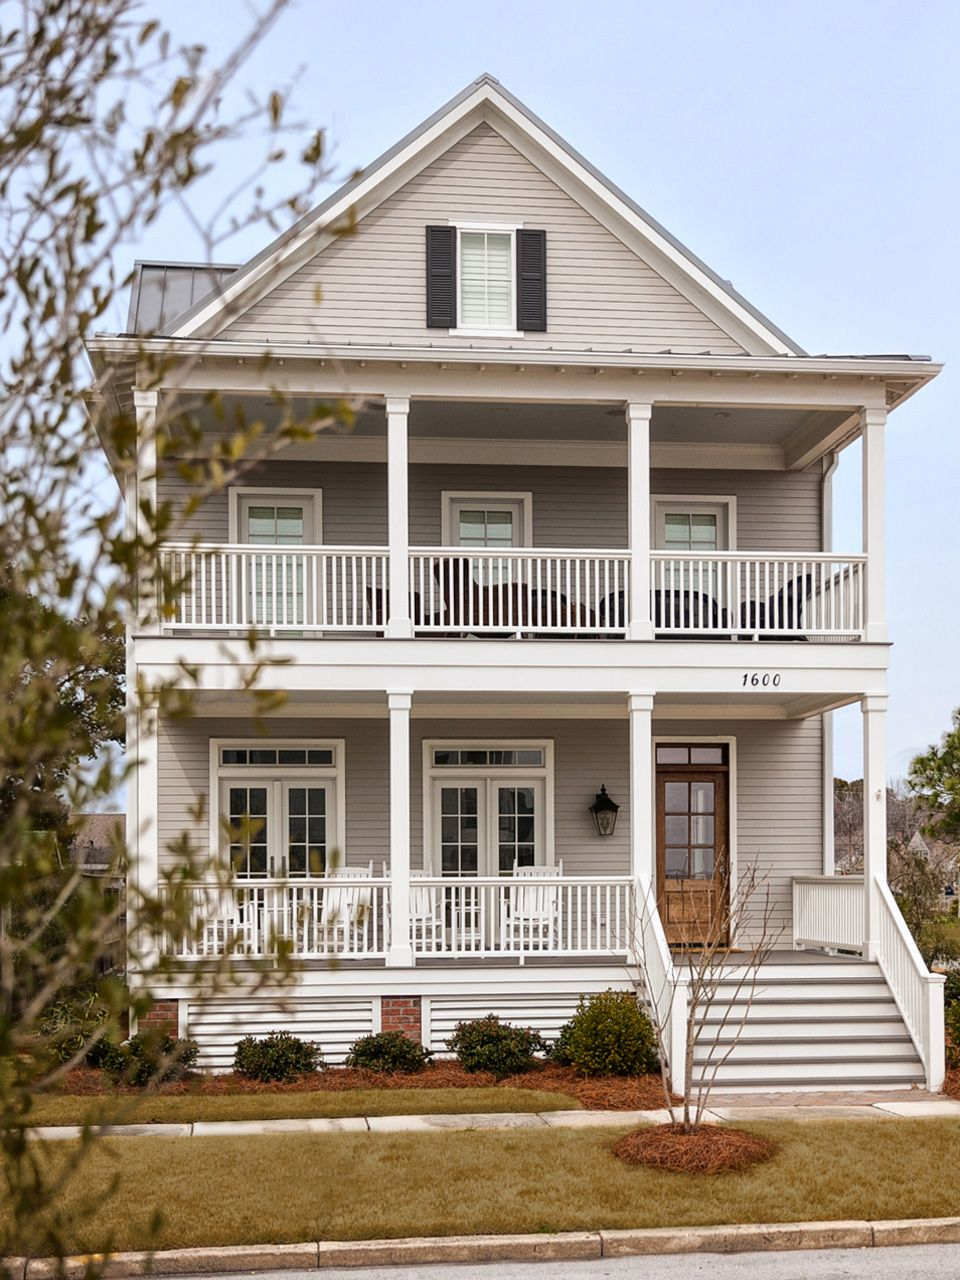 Image result for sherwin williams mindful gray exterior